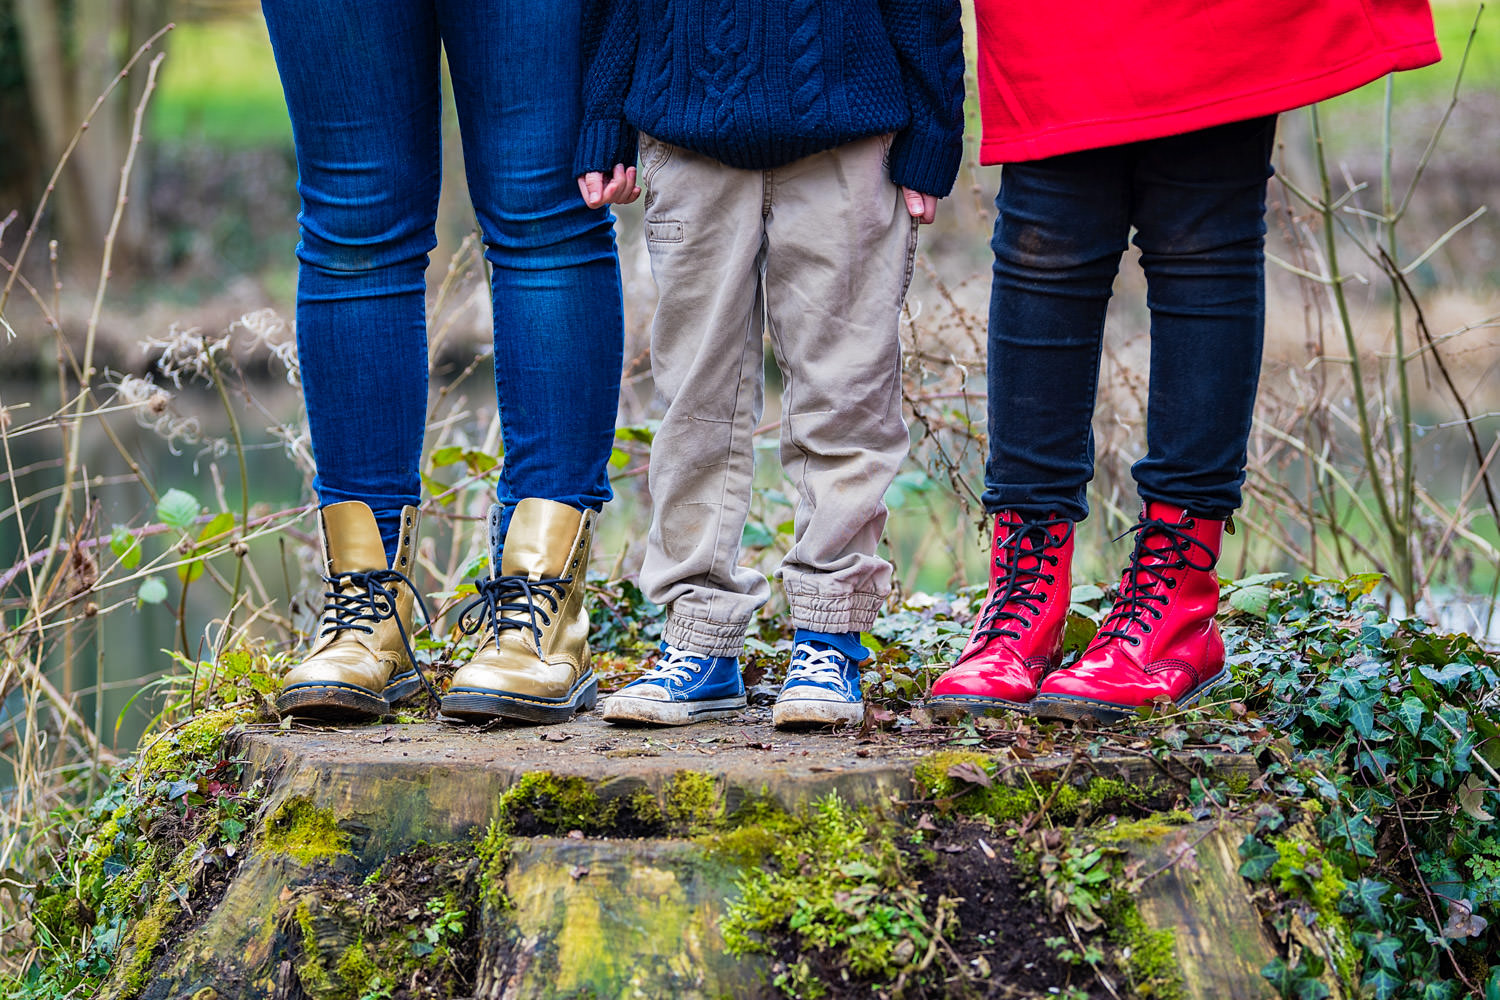 children's legs and shoes standing on tree stump